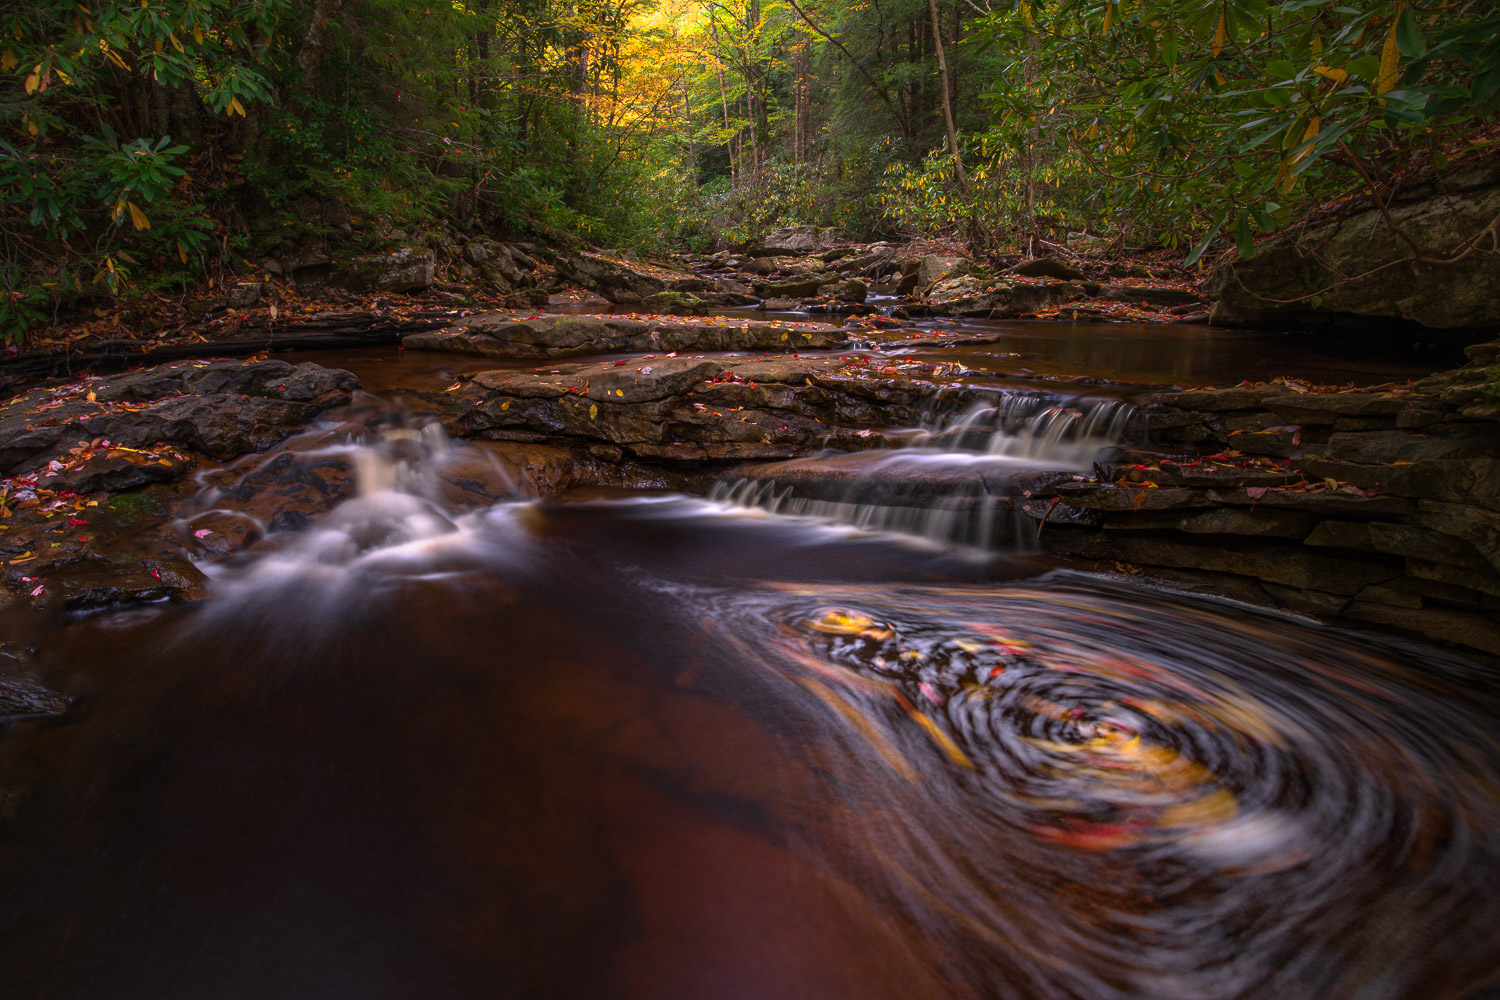 Swirling leaves in Red Run captured with a long exposure for creative abstract effect.